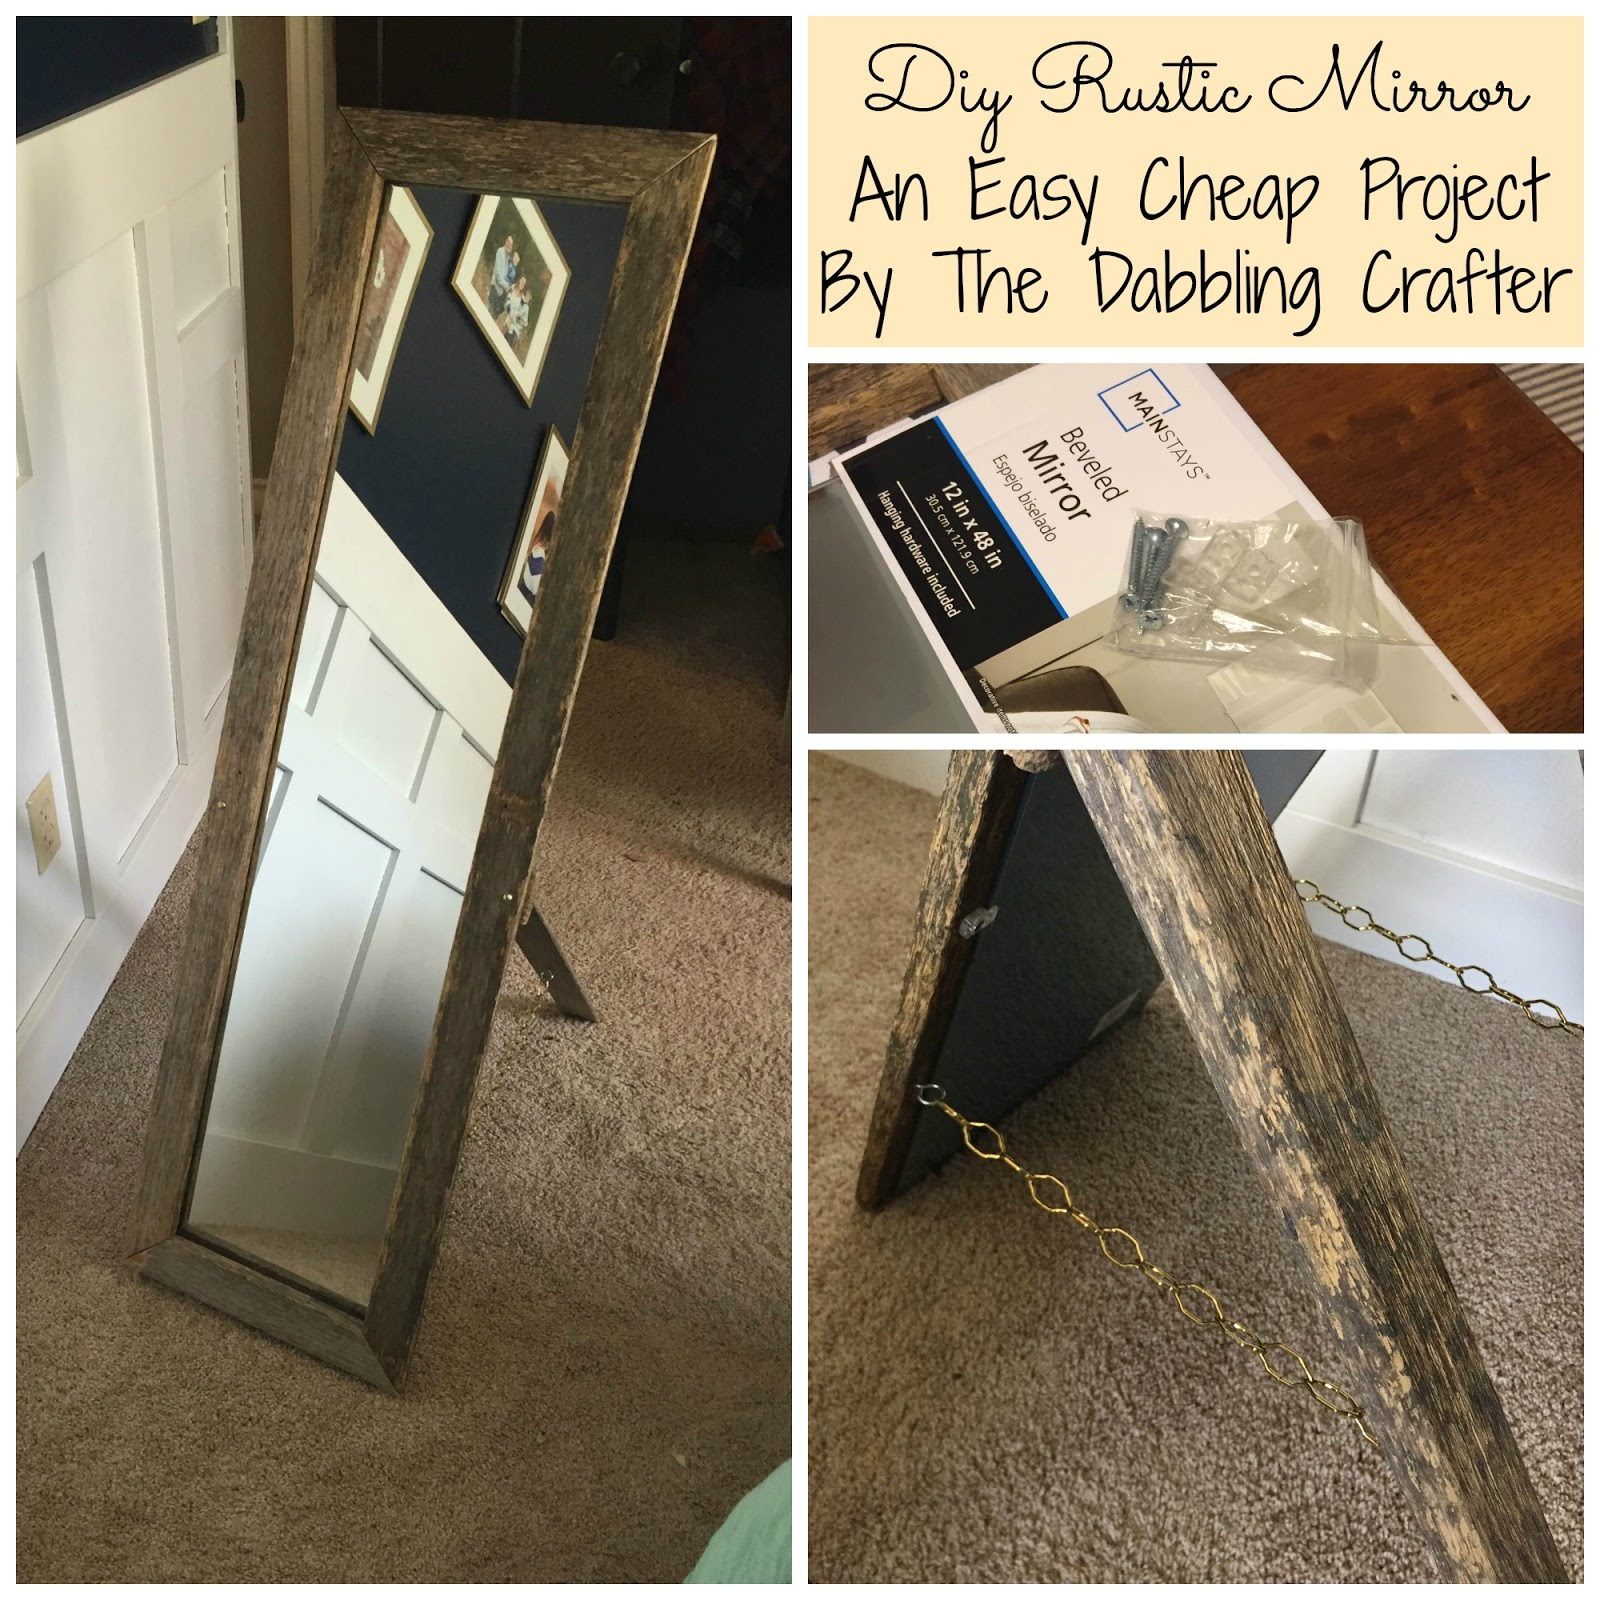 The Dabbling Crafter: DIY Sunday: Rustic Mirror Frame and Stand